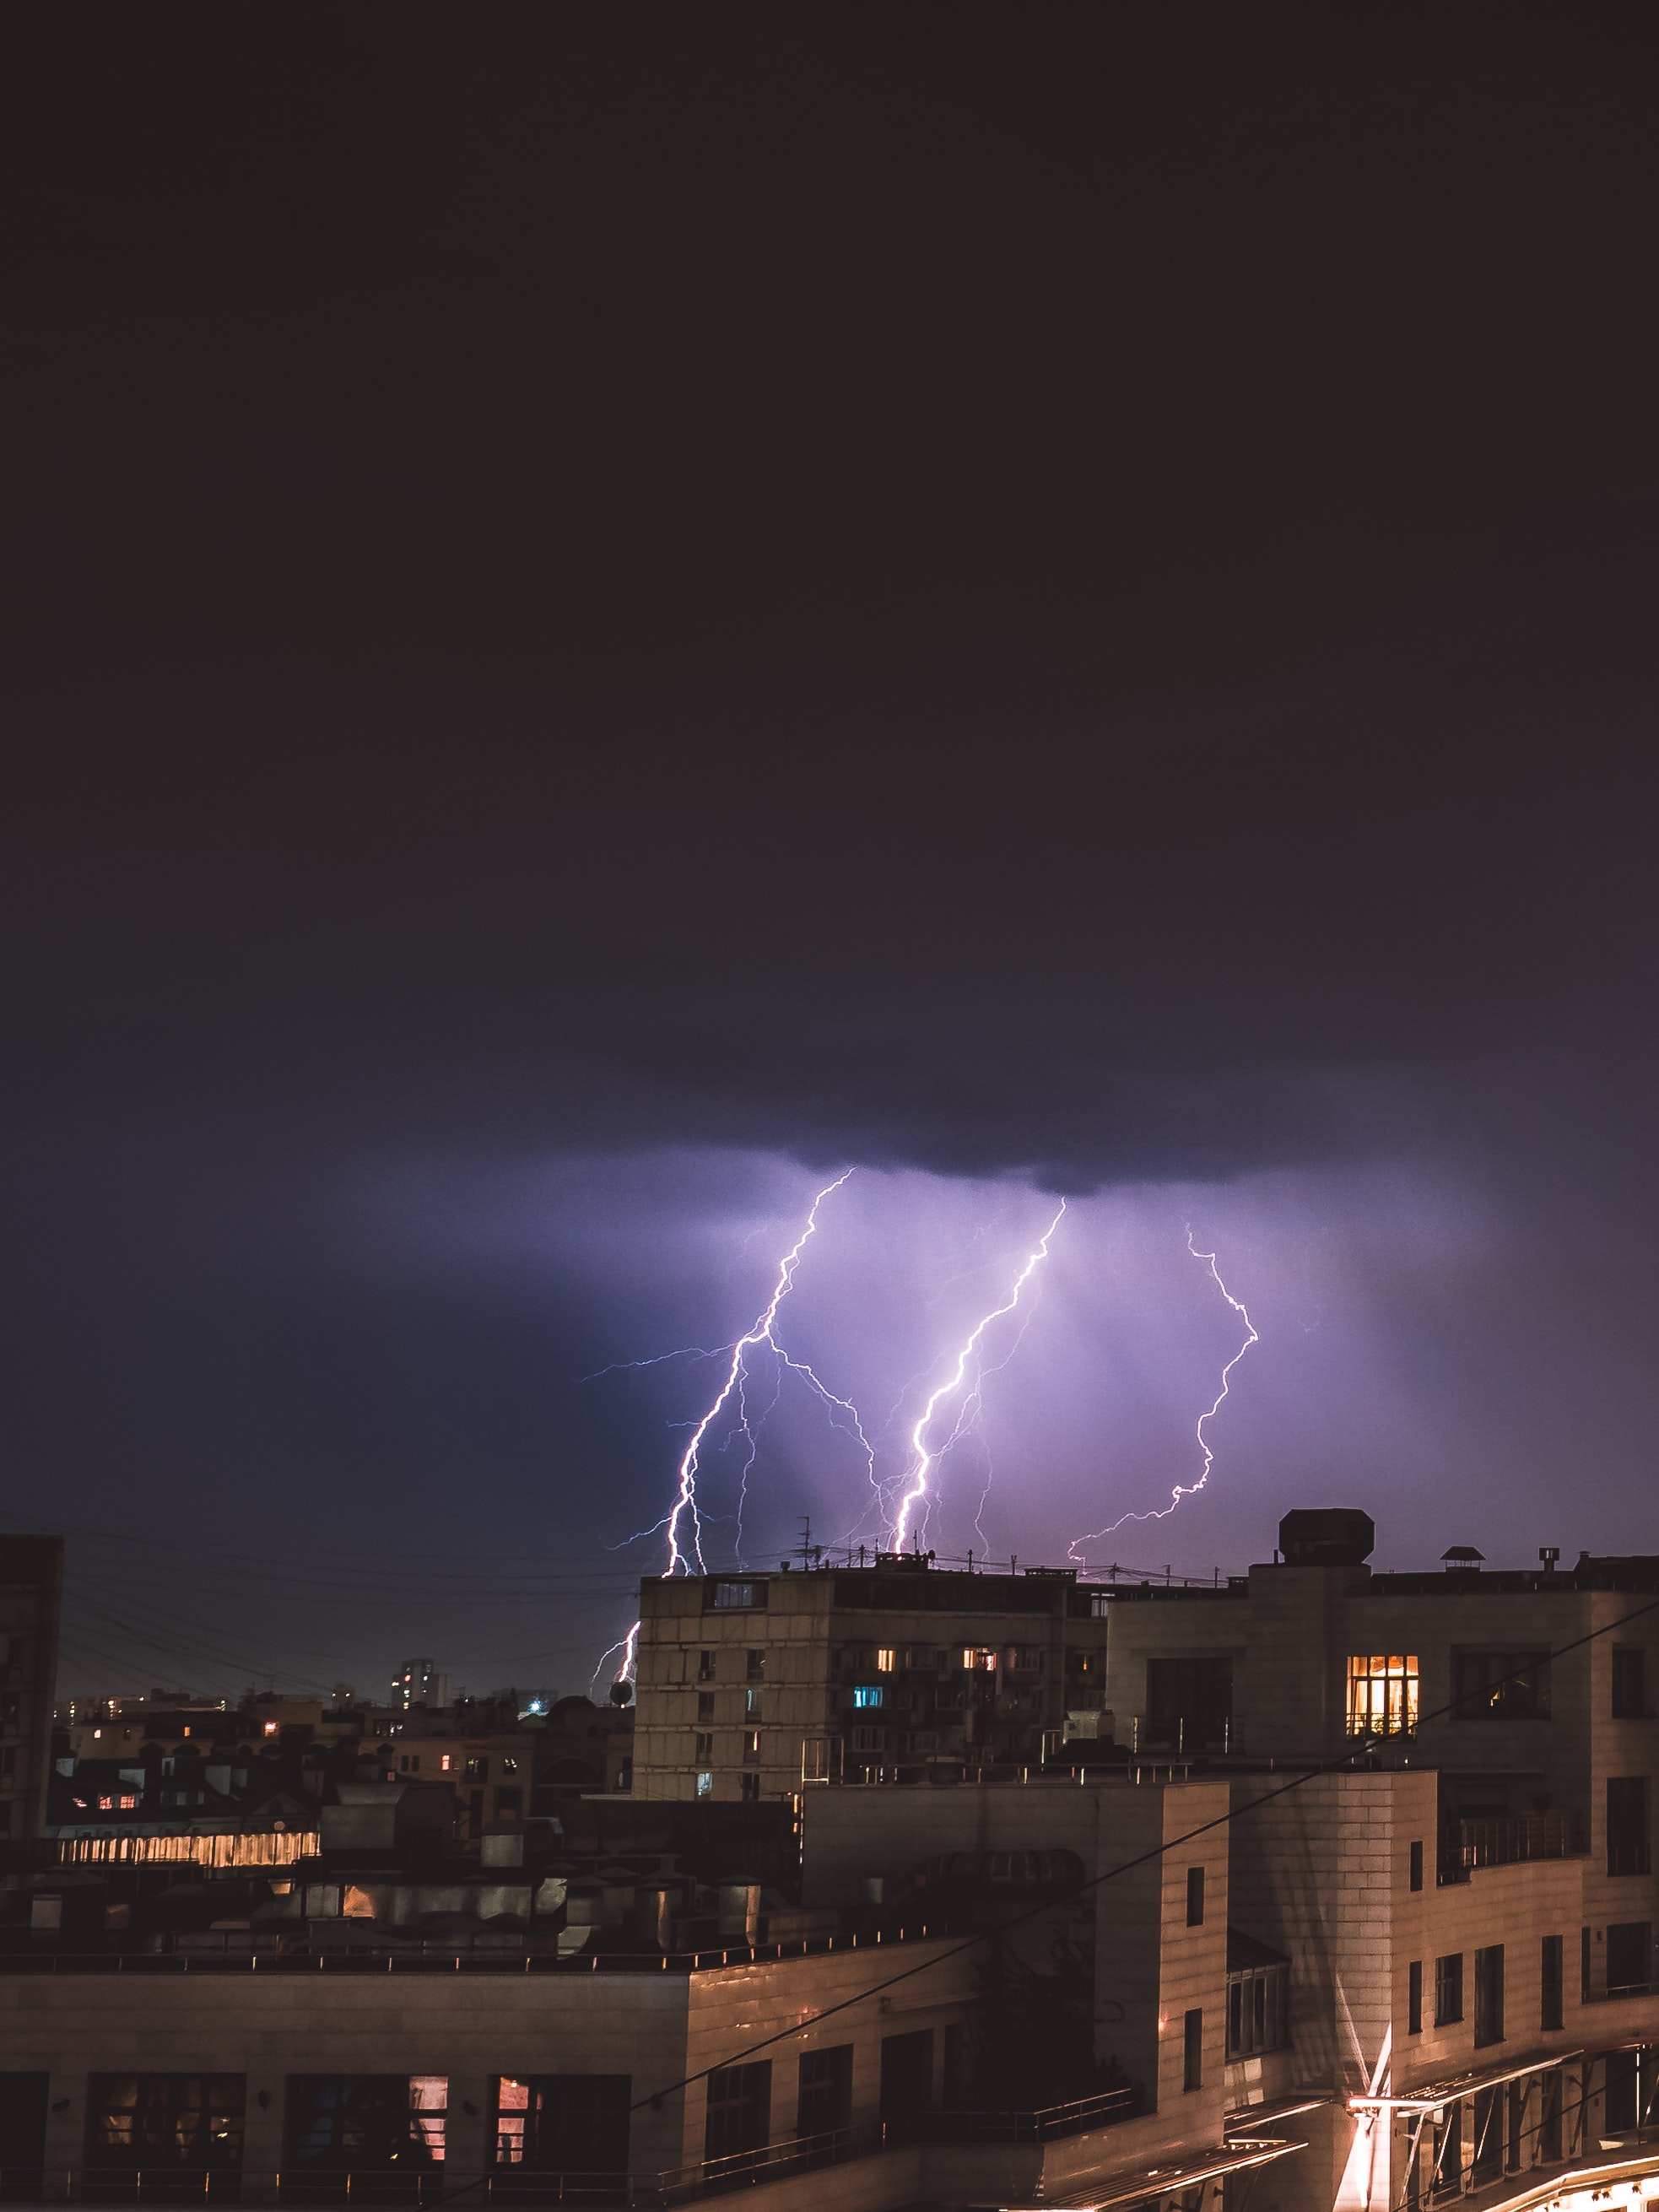 lightning over concrete buildings during nighttime